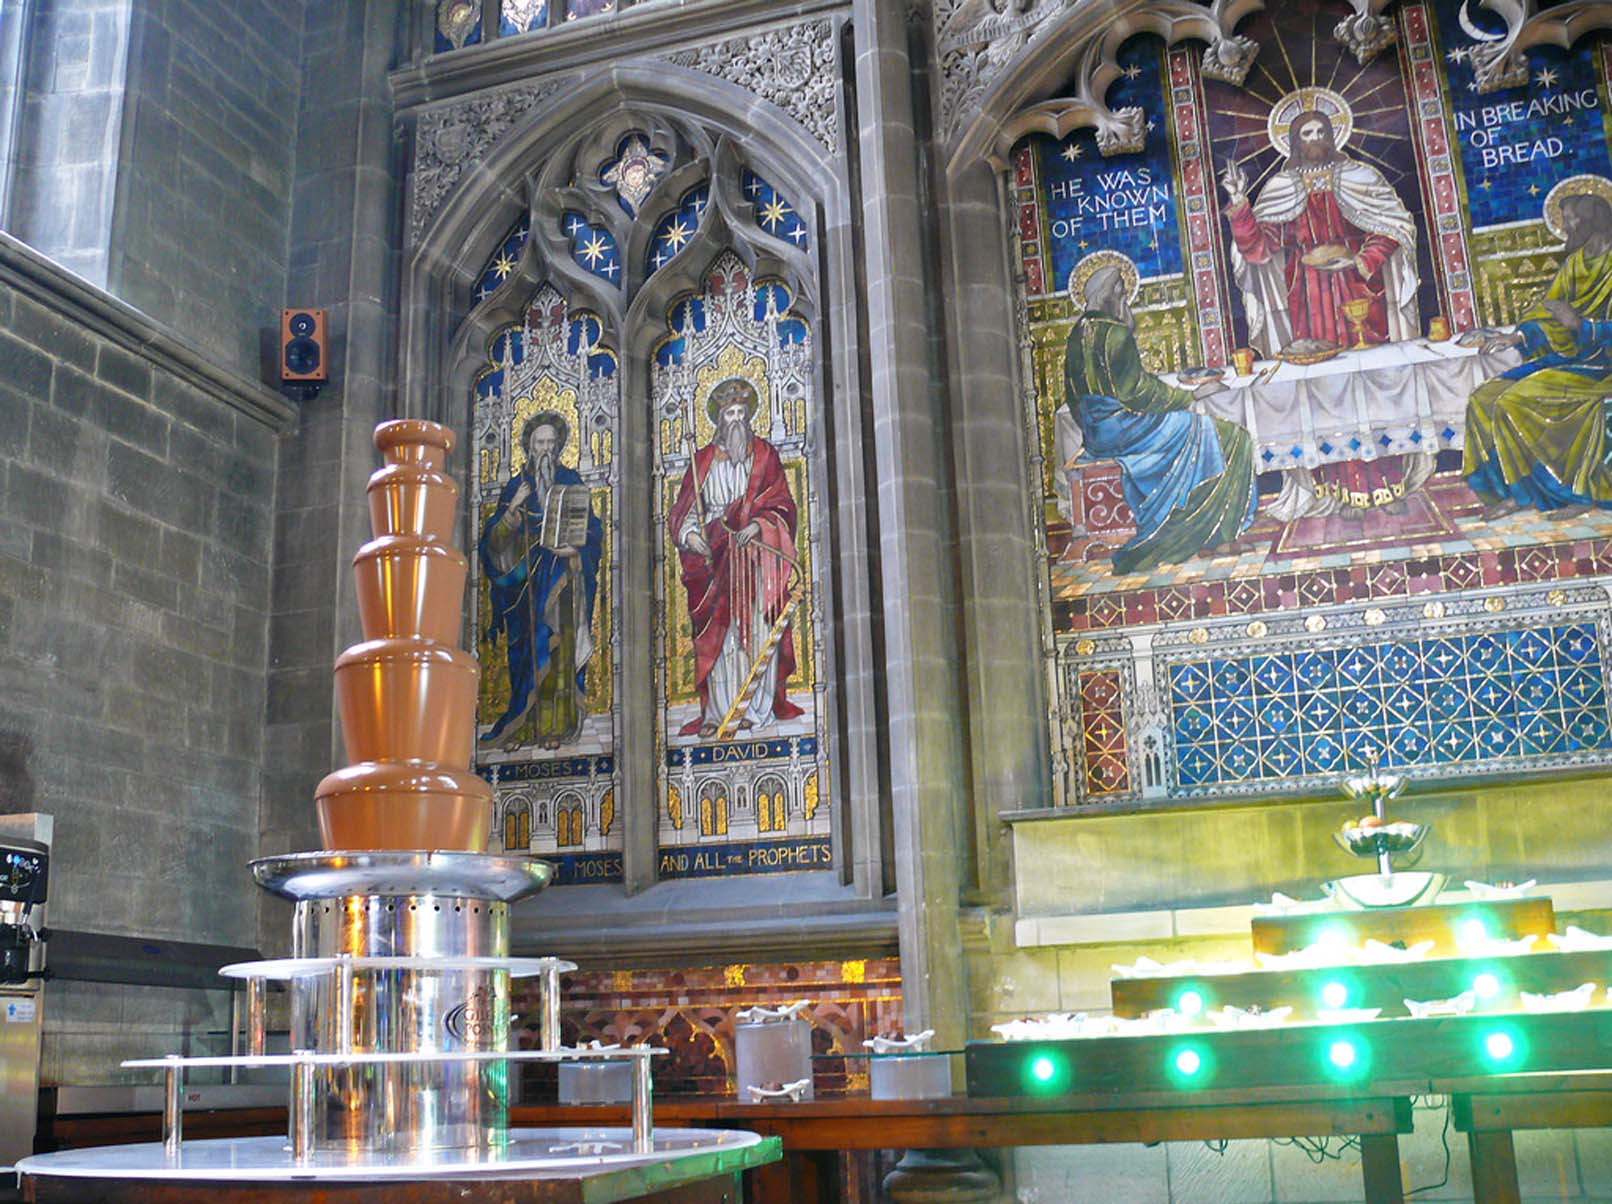 Chocolate Fountain in former church, Derby. The Caravan Gallery